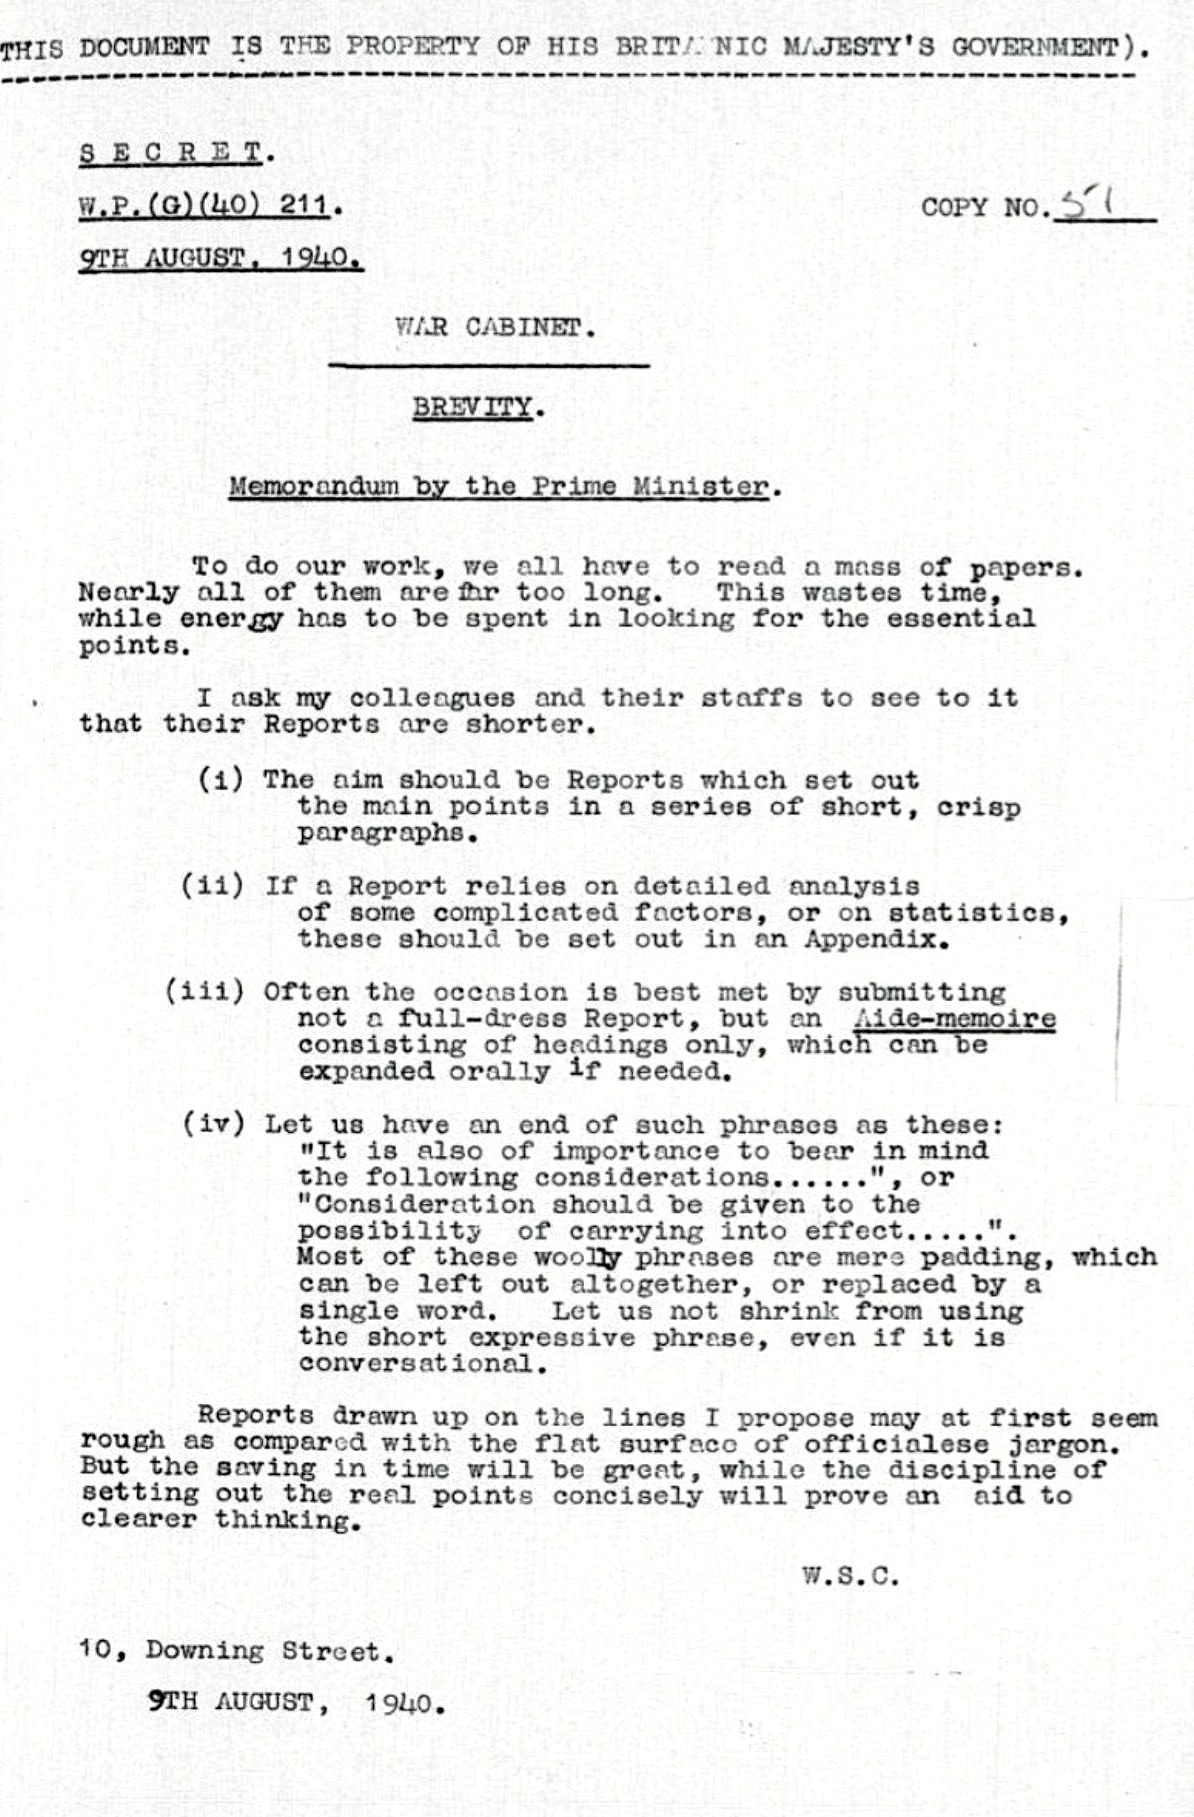 """Winston Churchill wrote (or most likely dictated) this memorandum just a few months after the  Miracle of Dunkirk —a massive evacuation of more than 300,000 British and French soldiers on the coast of France. With the war in full swing against Hitler's Third Reich, Churchill was driven to save time """"while the discipline of setting out the real points concisely will prove an aid to clearer thinking."""""""